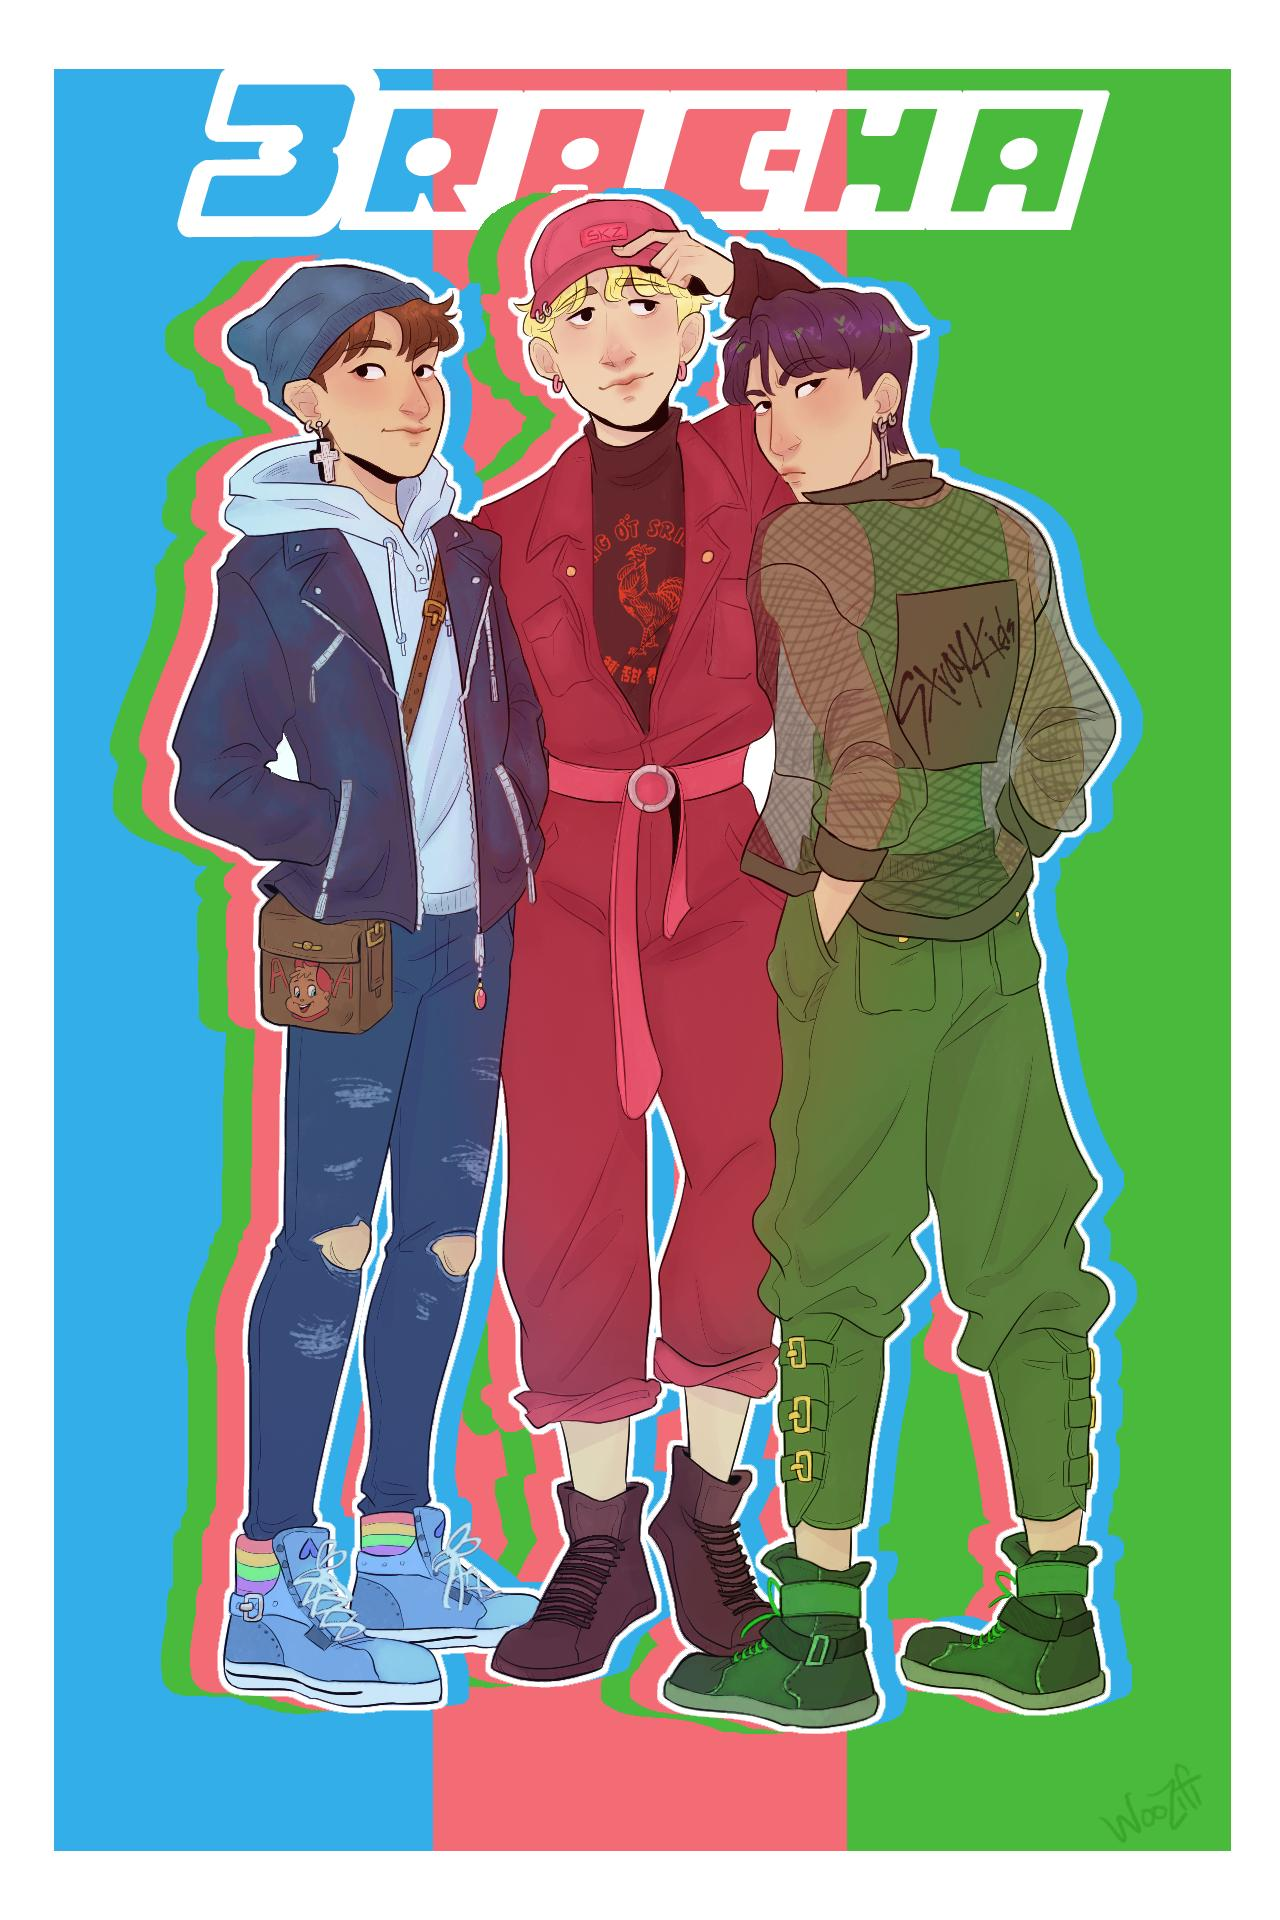 sugar, spice, & everything nice! IT'S THE #3RACHA BOYS!!!! #StrayKids #BANGCHAN #HAN #CHANGBIN https://t.co/UcErJEiDMy